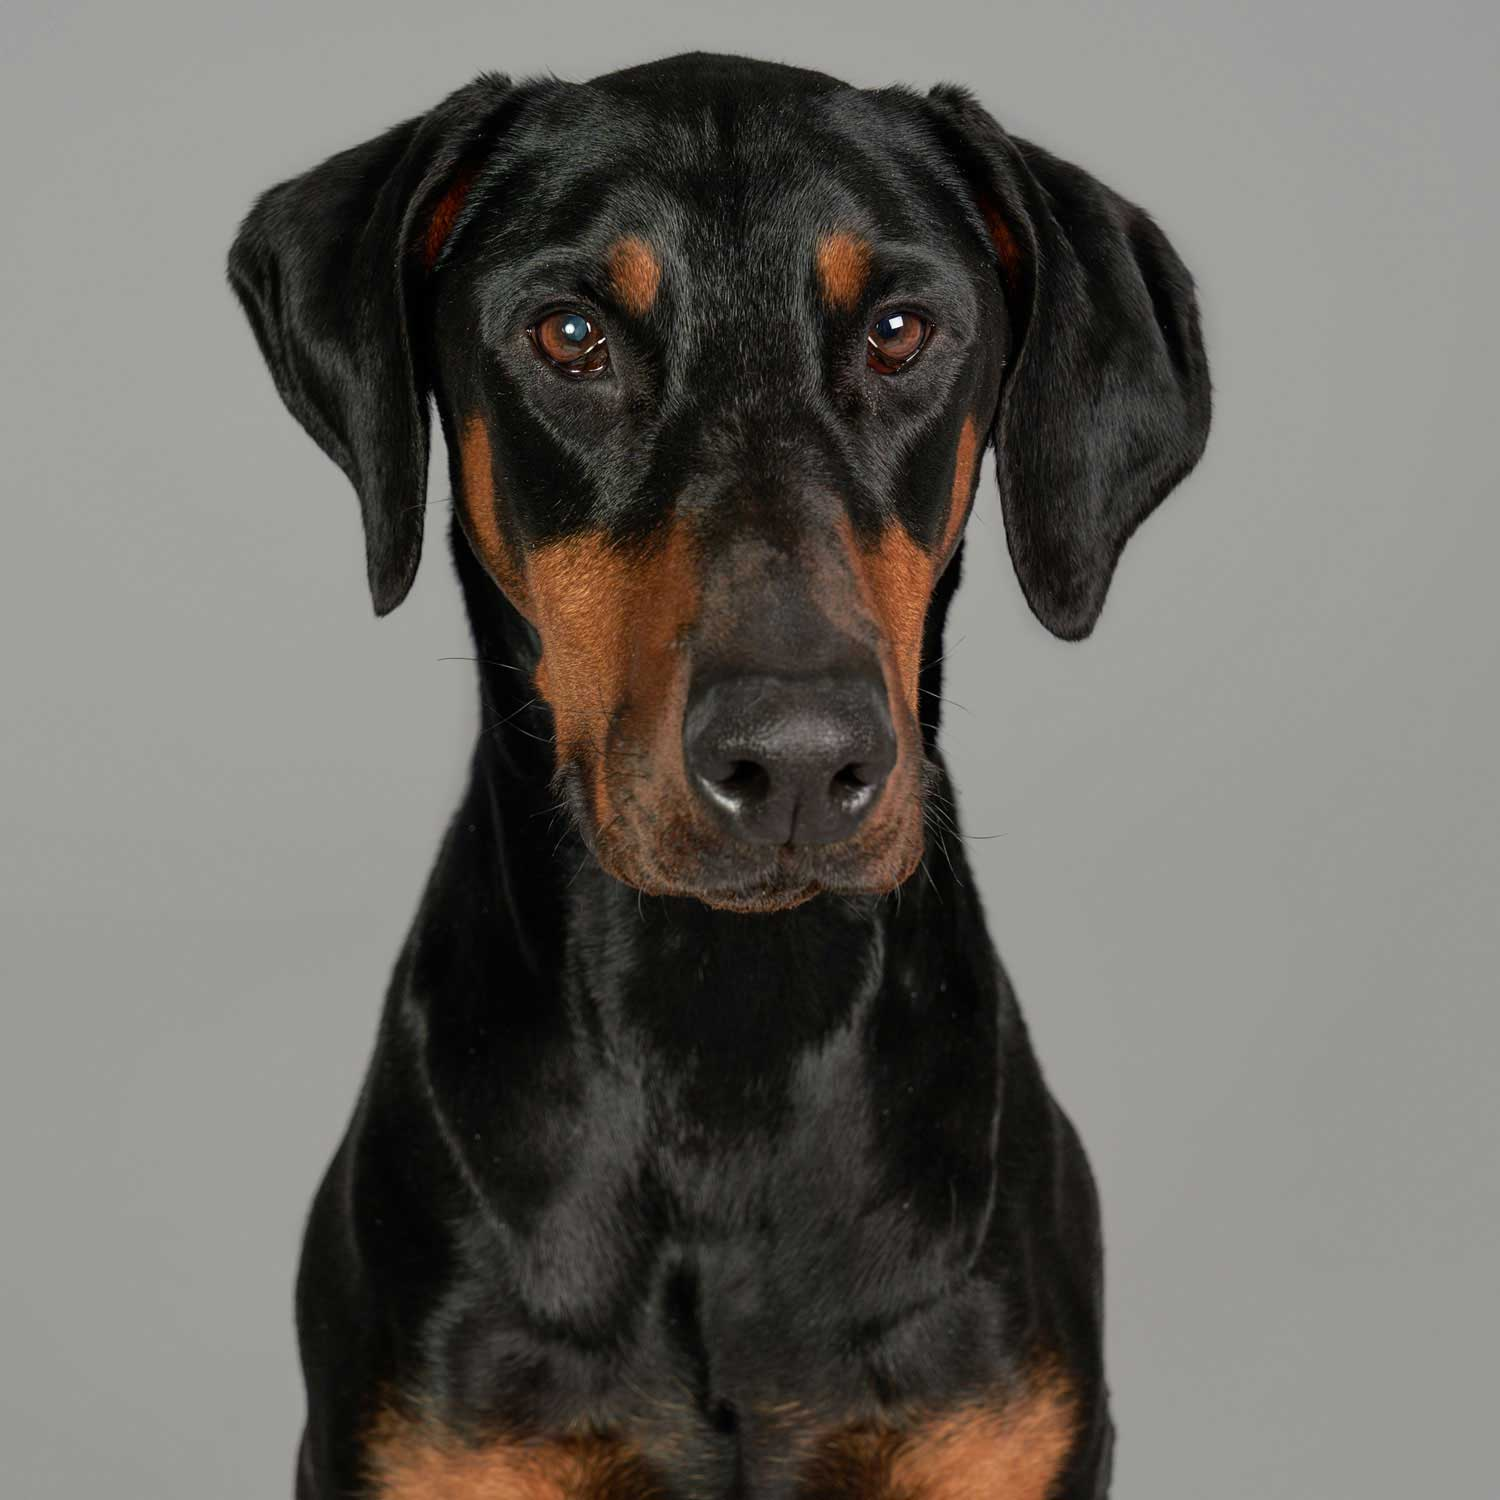 Dog Portrait Studio Photography 0017